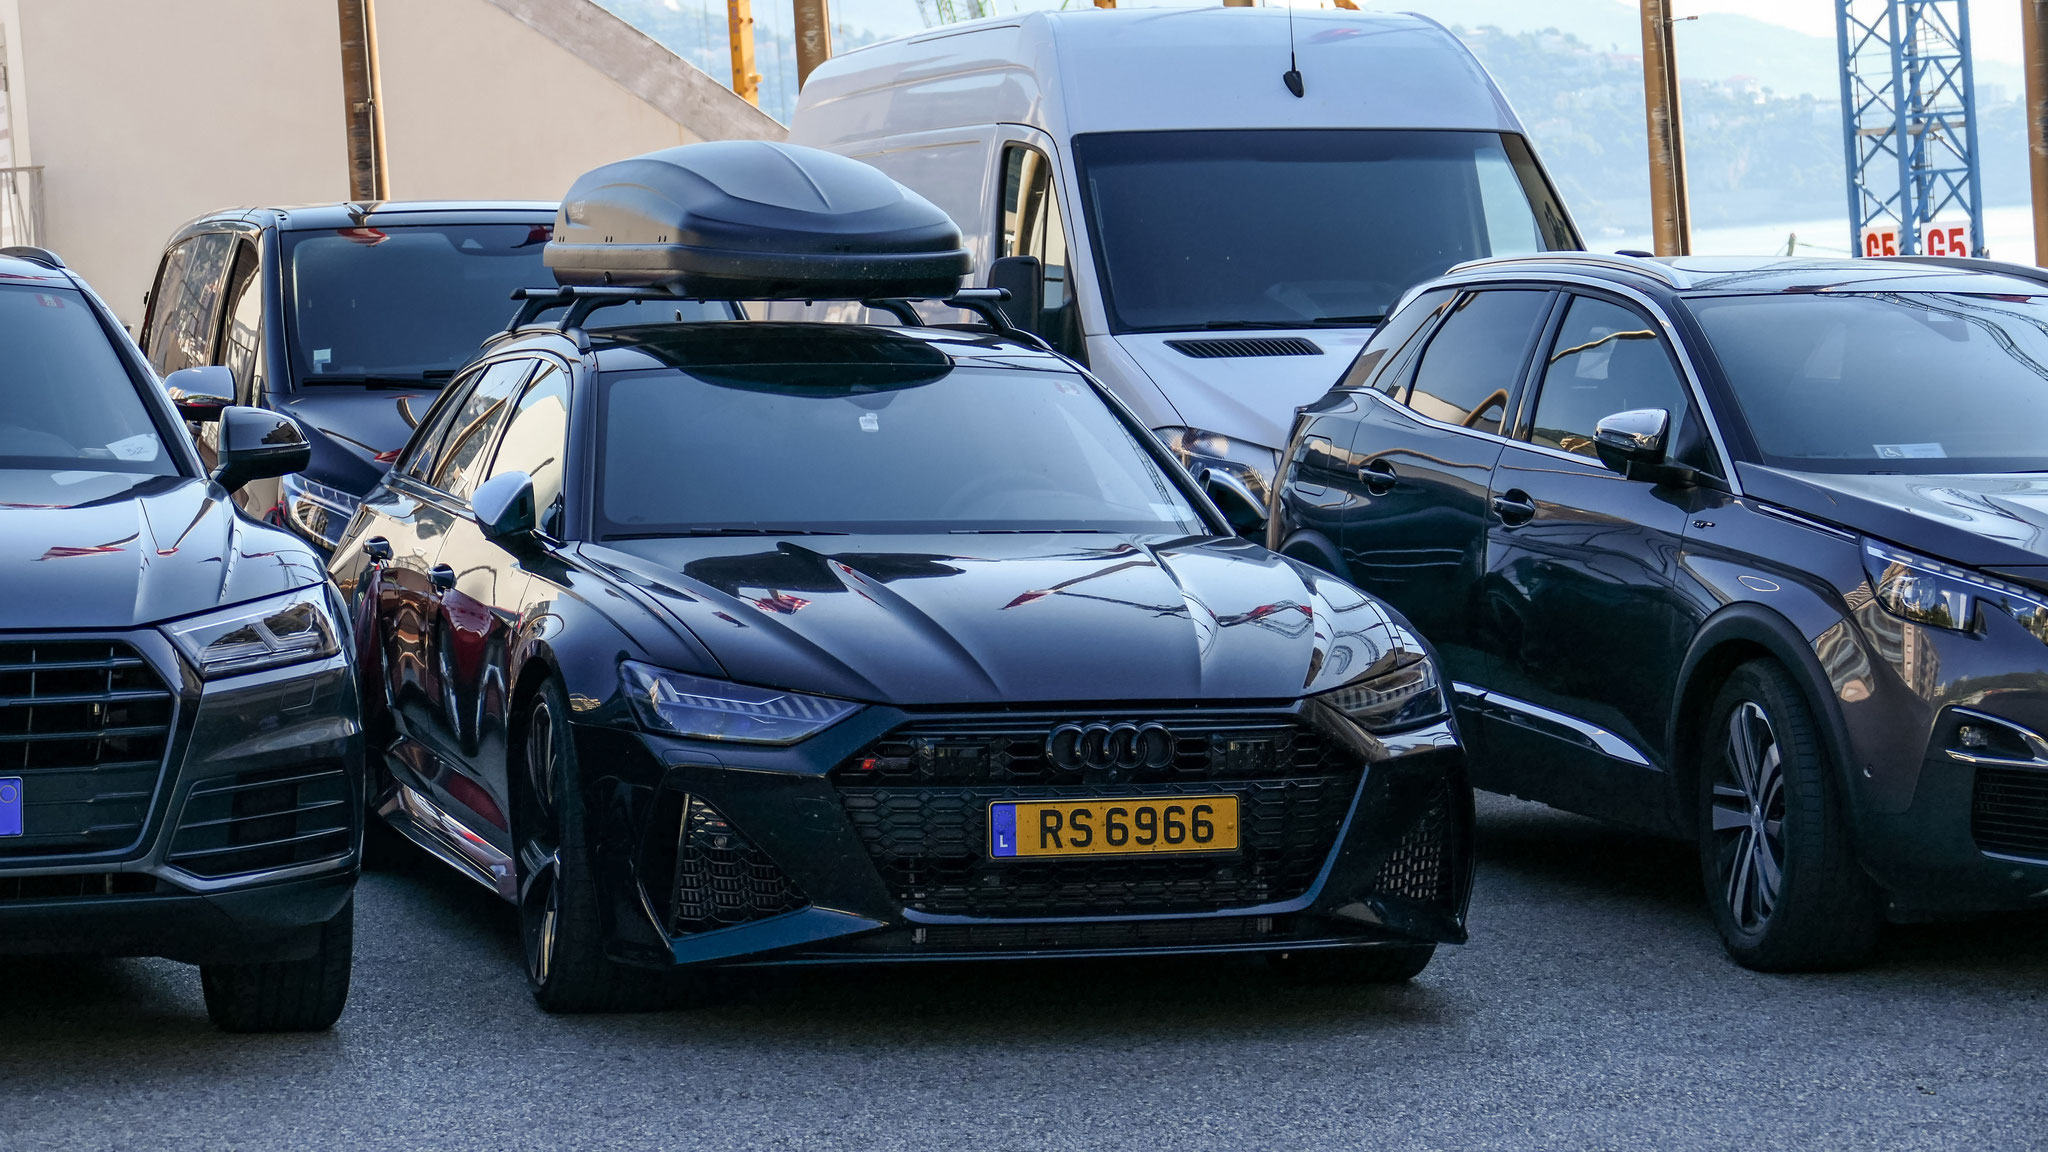 Audi RS6 - RS6966 (LUX)